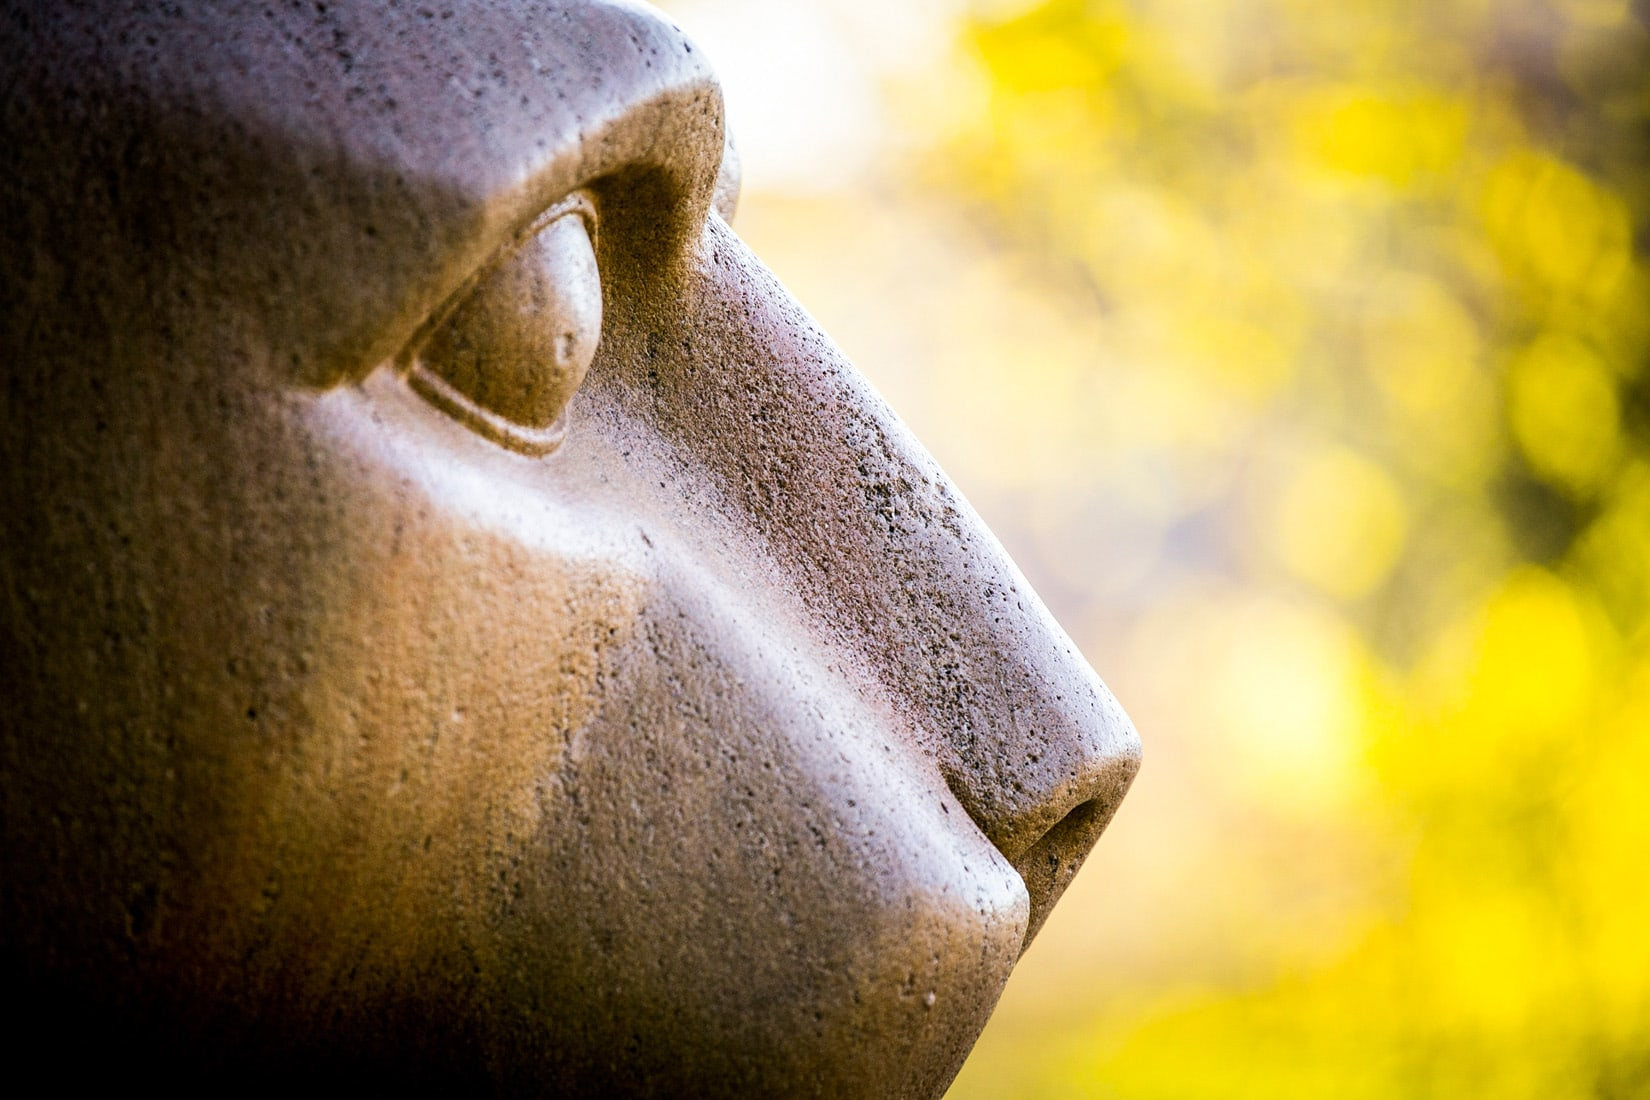 For the Future that We Wait, by Bob Lambert Photography (Nittany Lion, State College, PA)